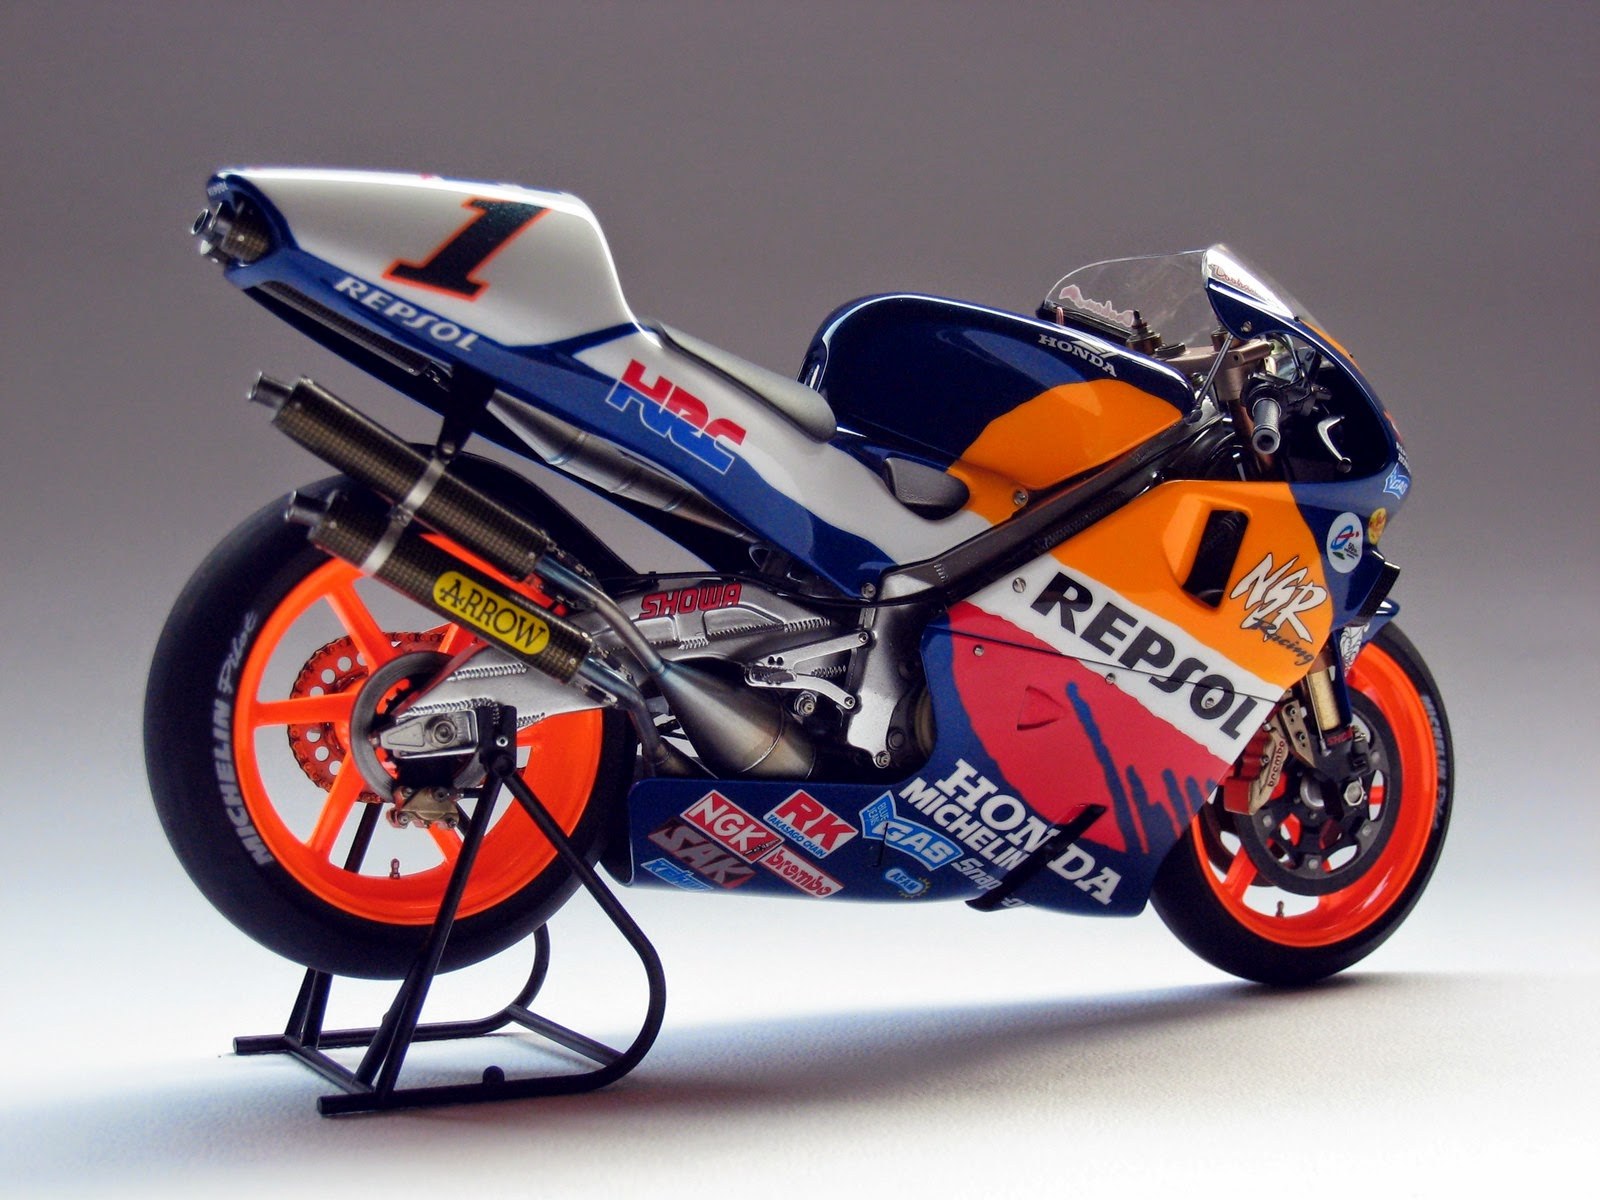 Racing Scale Models Honda Nsr 500 M Doohan 1998 By Luyan Wen